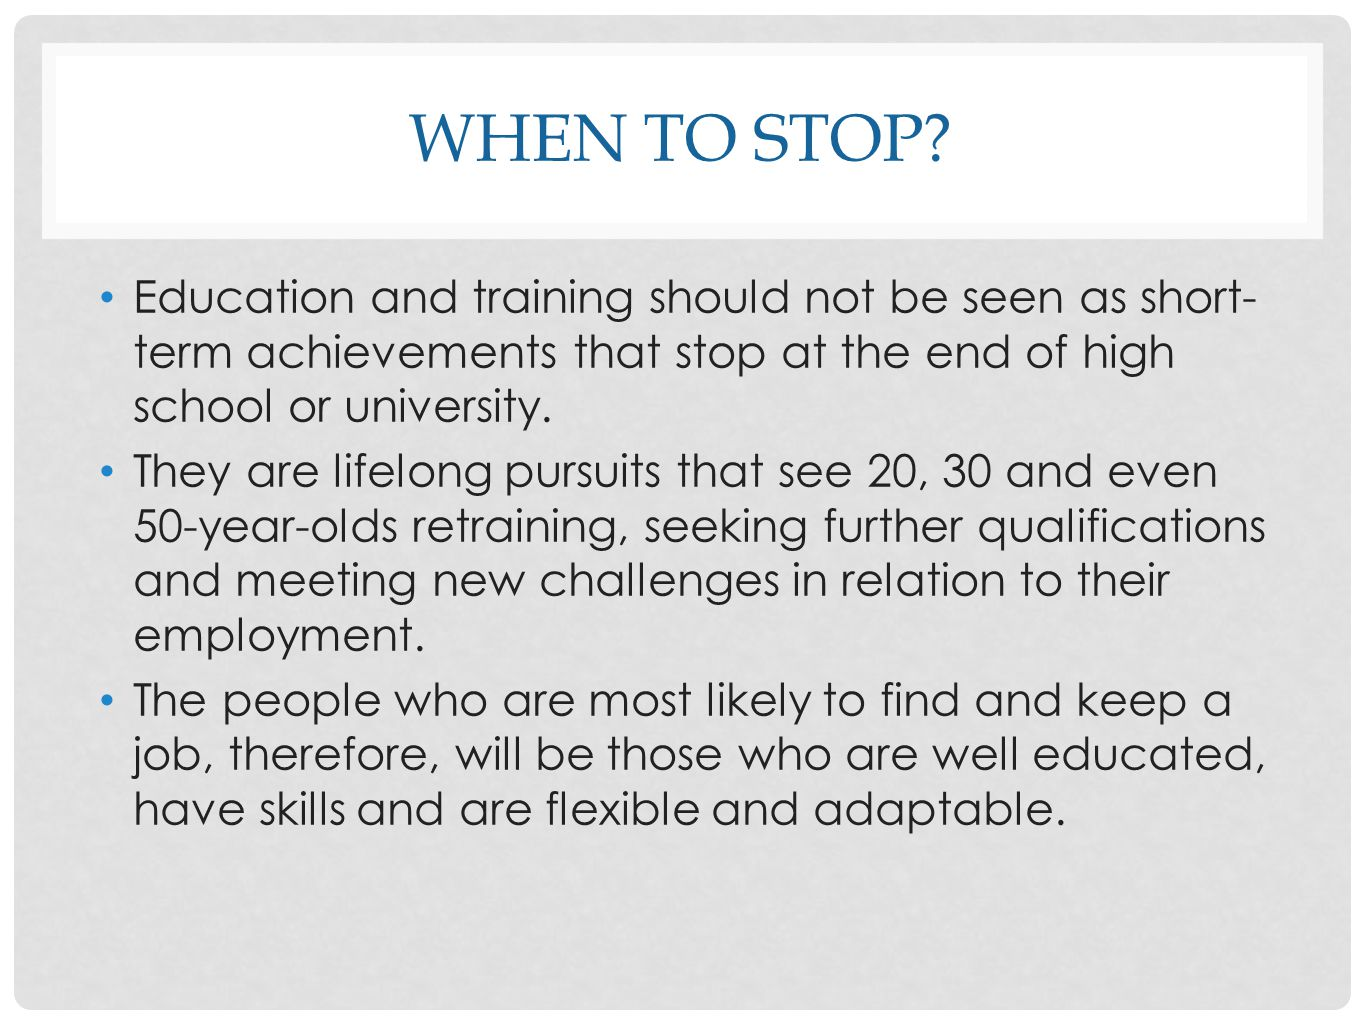 When to Stop Education and training should not be seen as short-term achievements that stop at the end of high school or university.